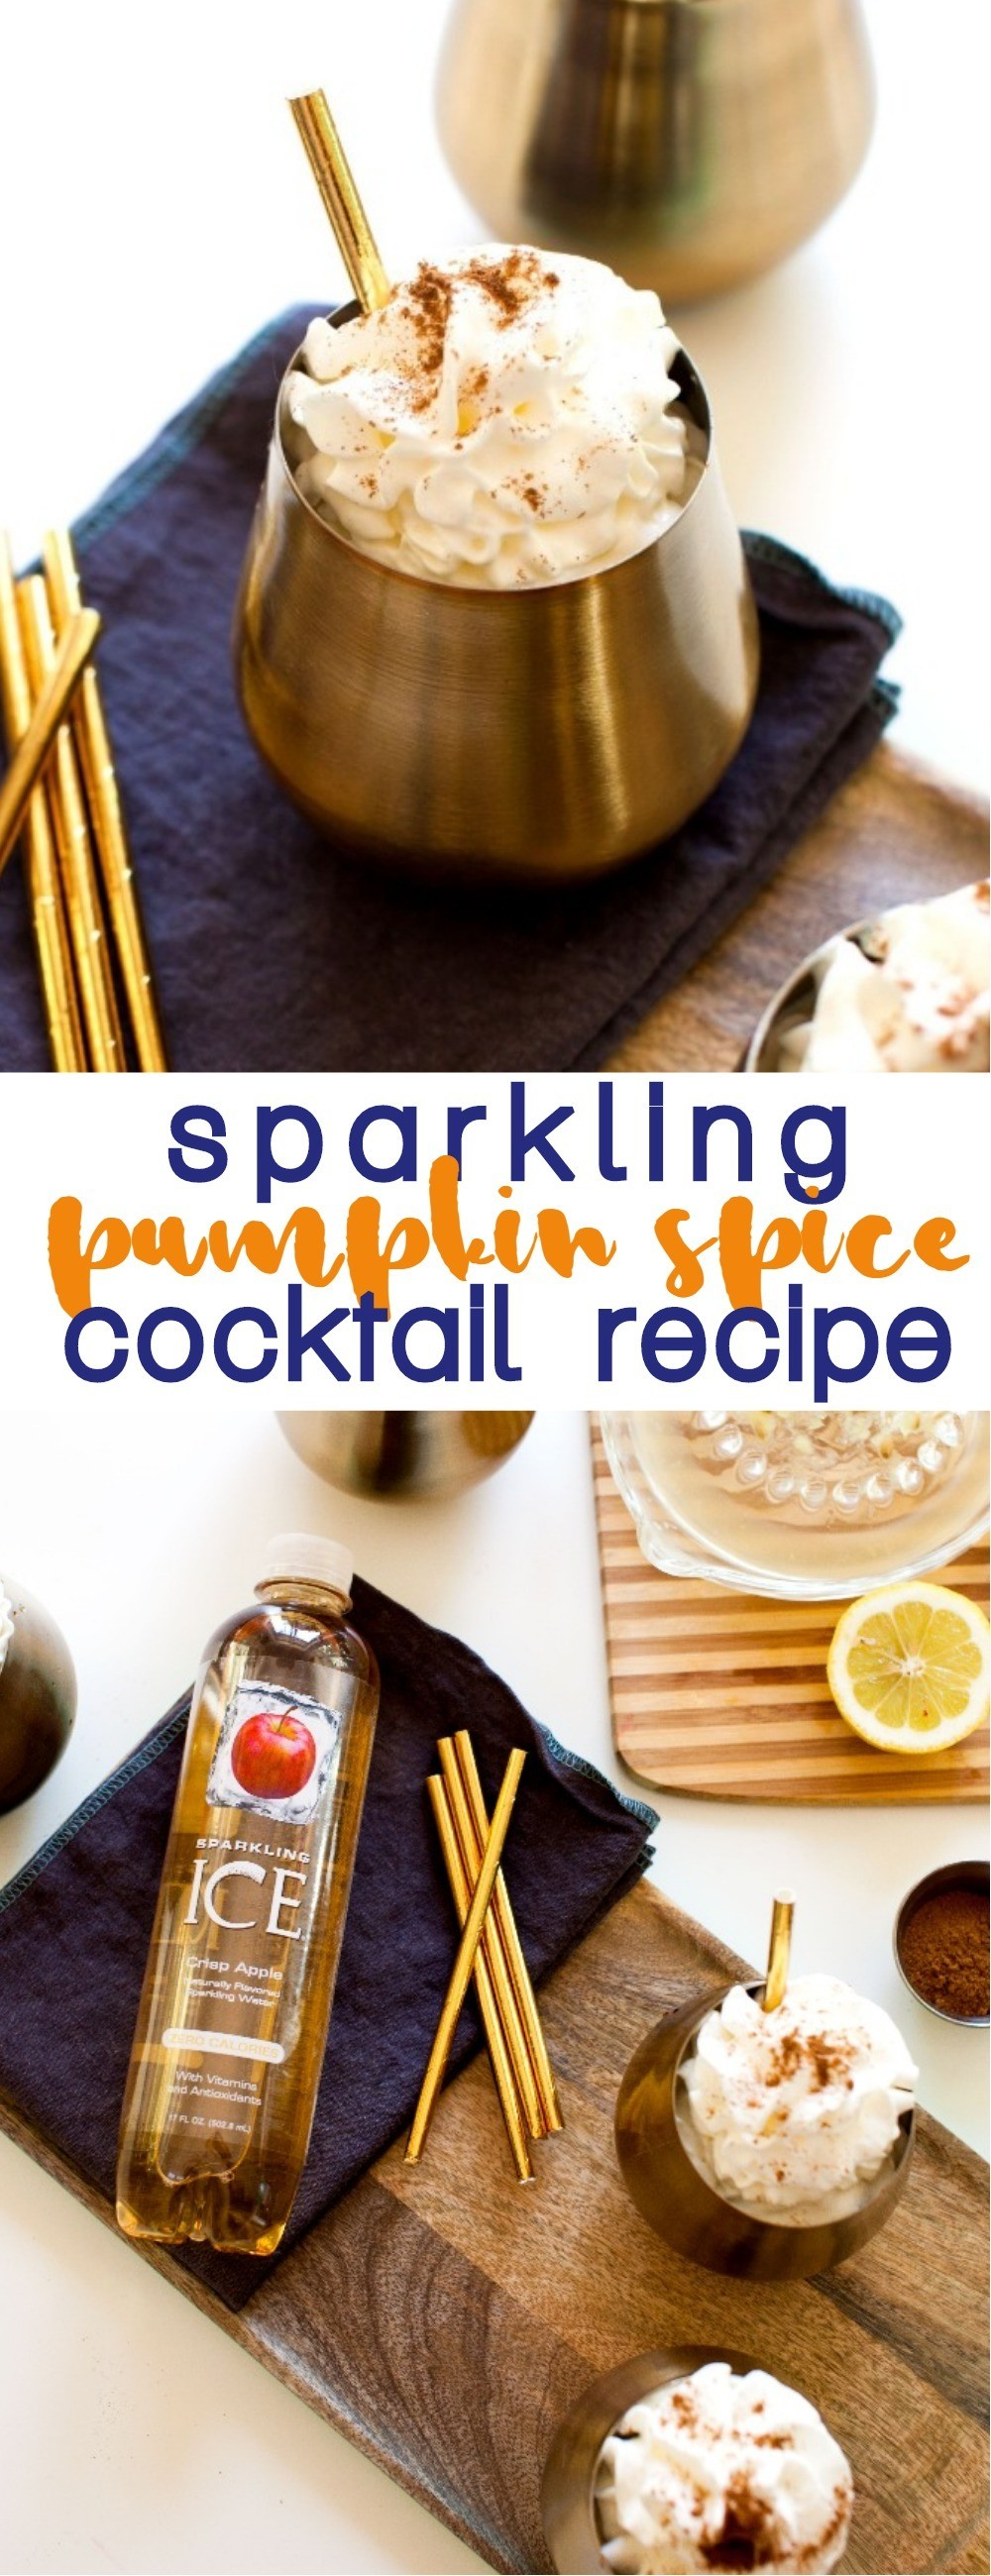 This Sparkling Pumpkin Spice Cocktail Recipe Is The Perfect Fall Drink Recipe